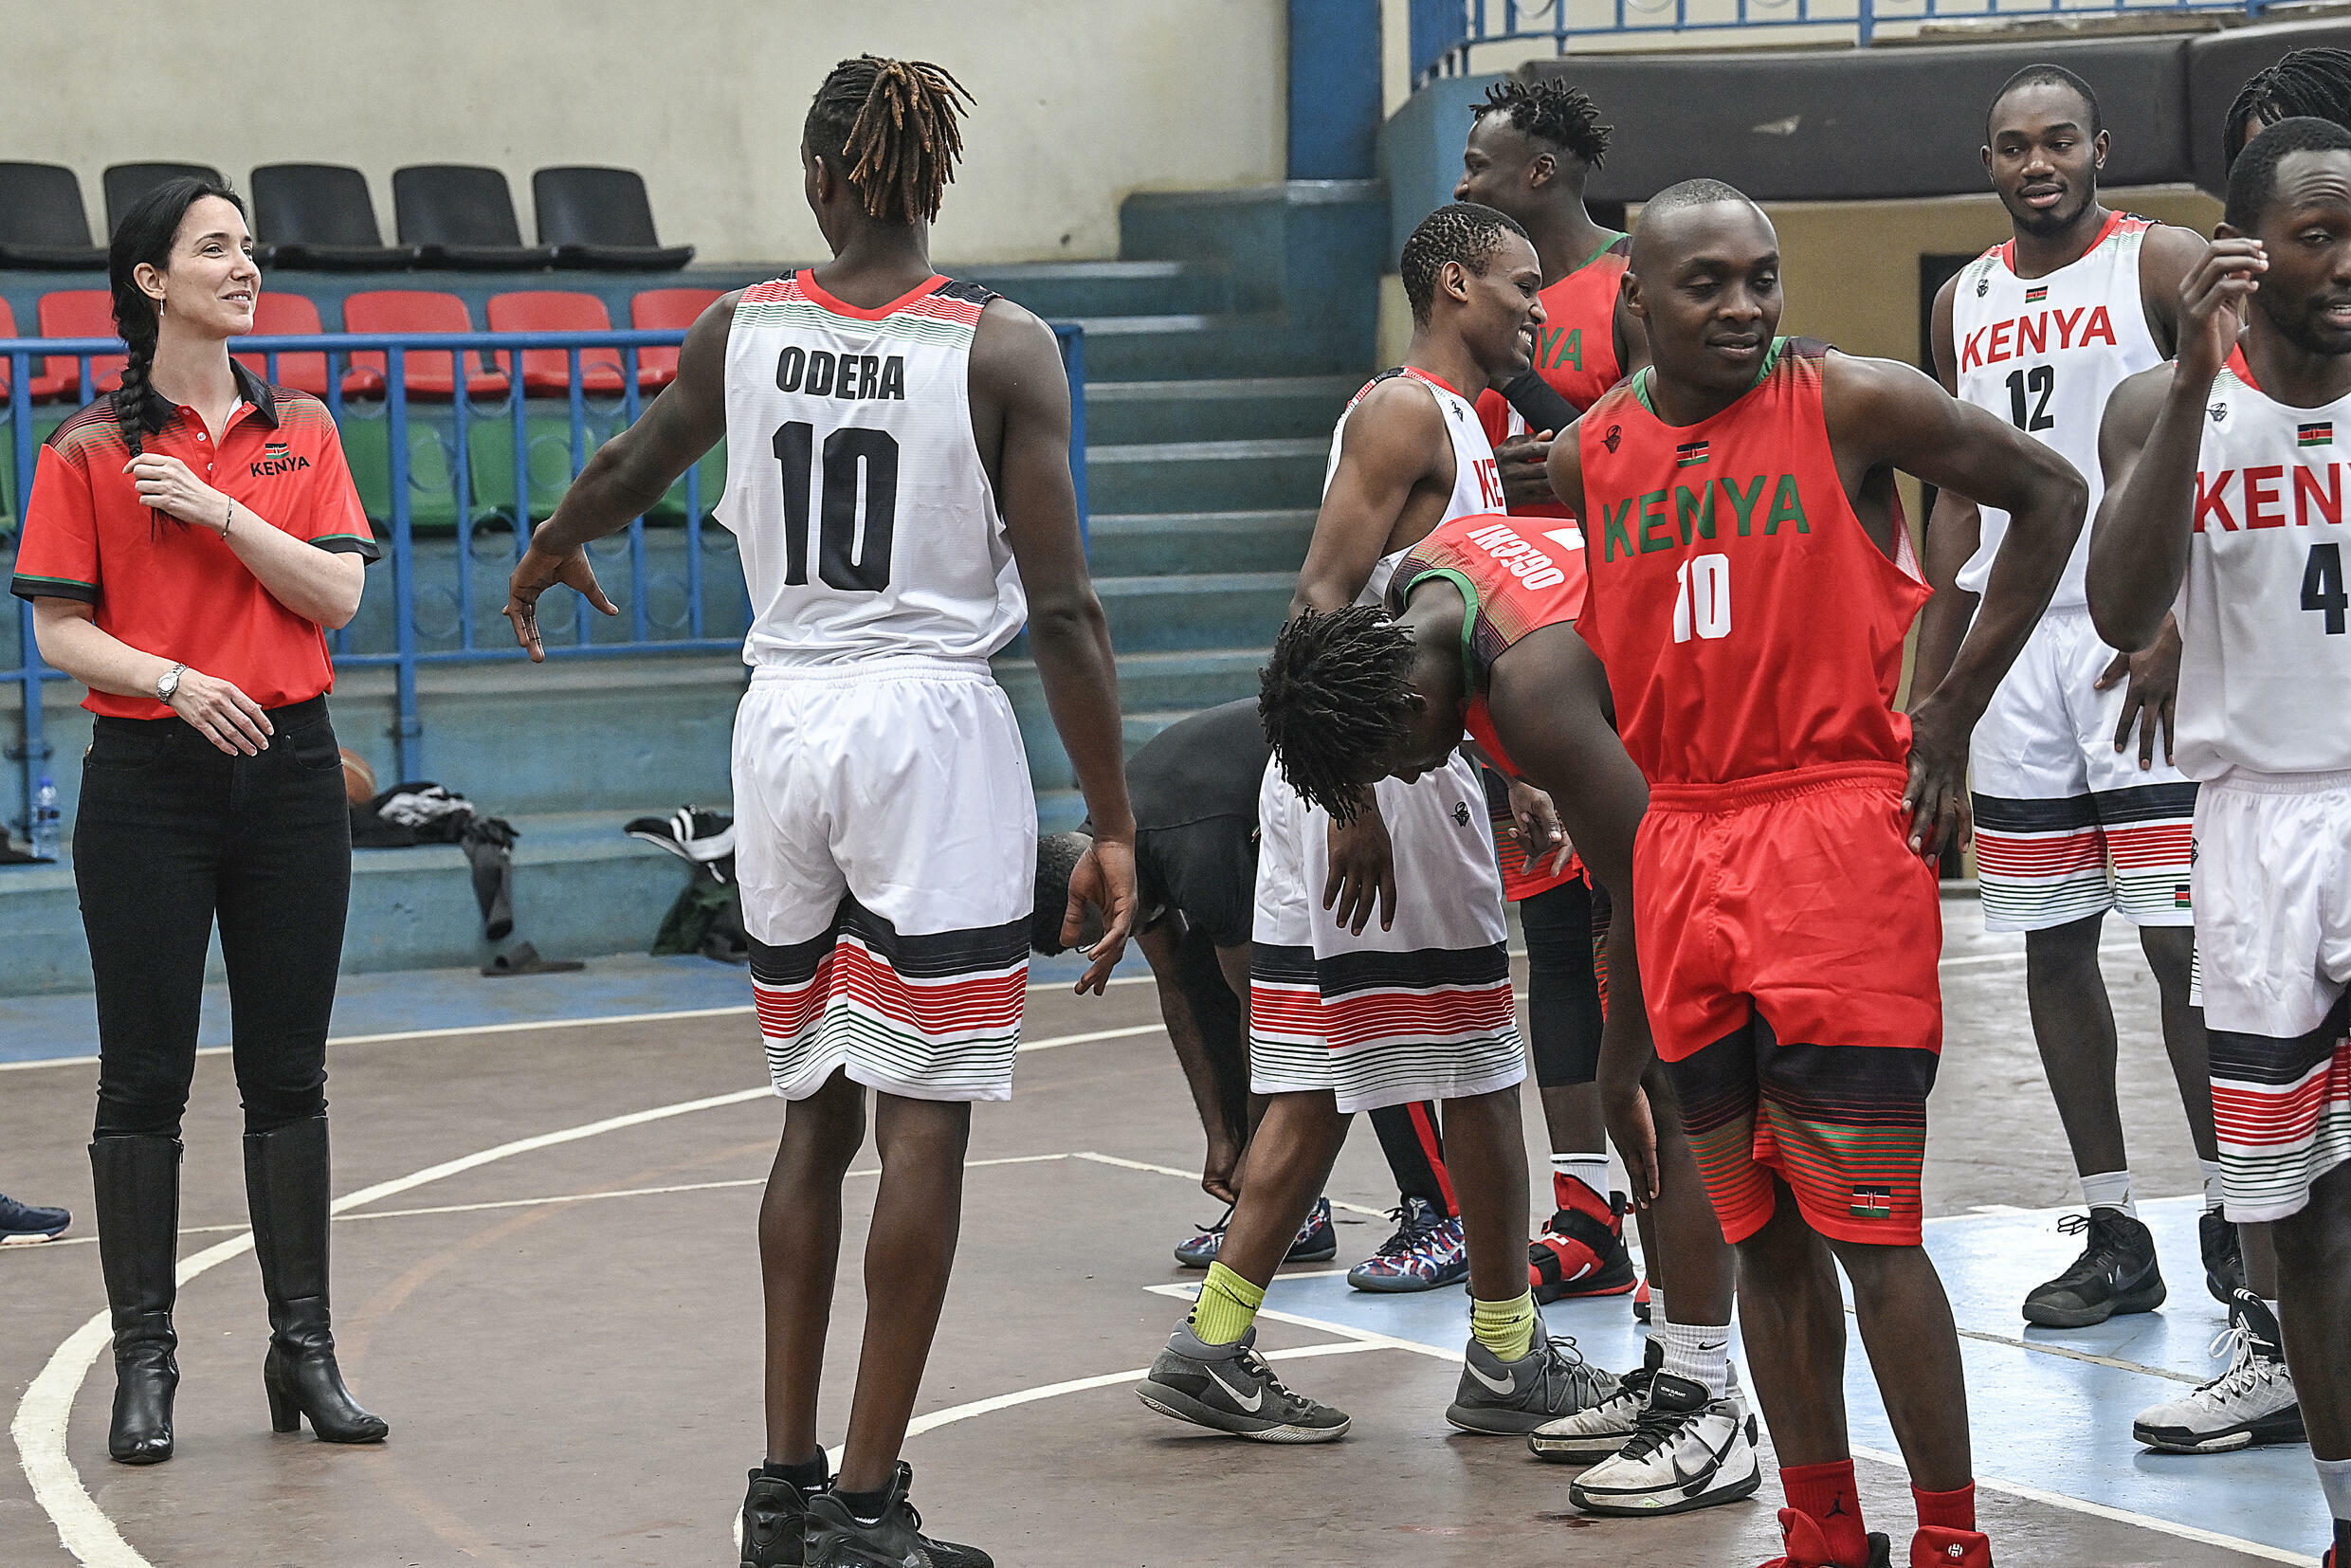 Mills reckons African basketball is heading for bigger and better things